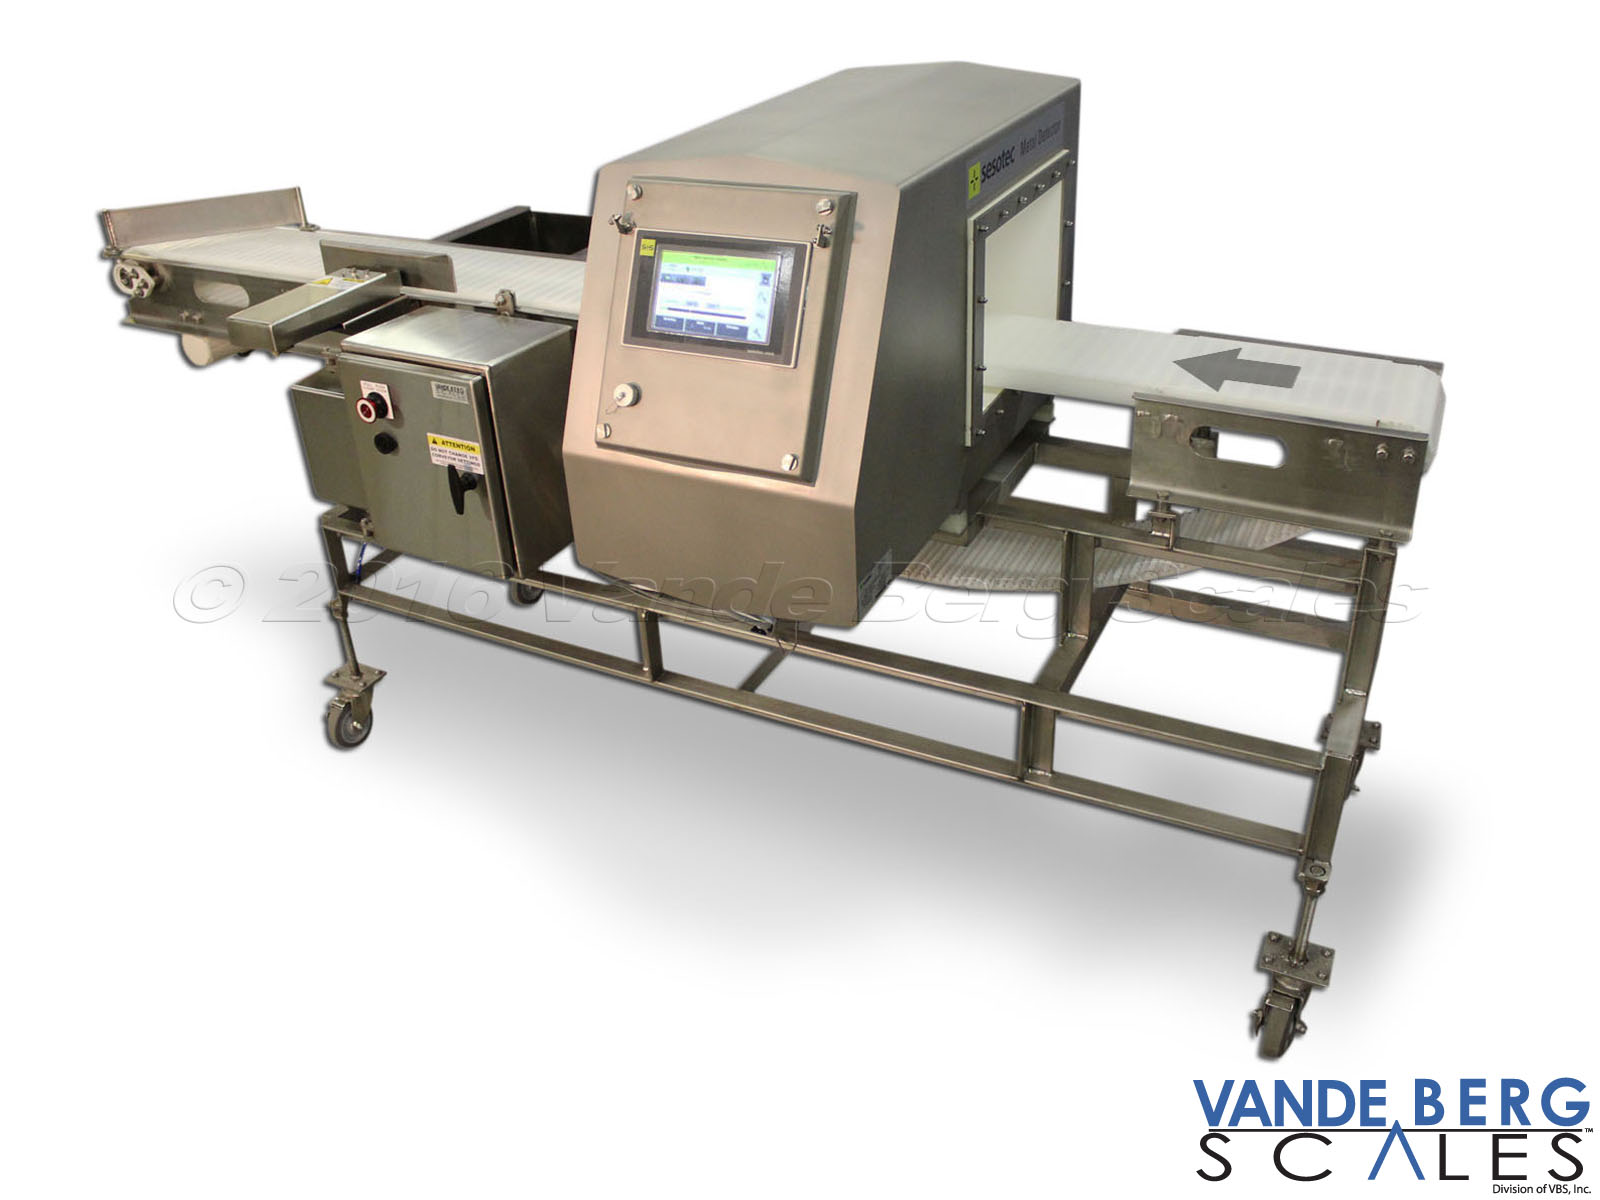 Metal Detector with metal-free zone and easy-to-clean stainless steel frame conveyor.